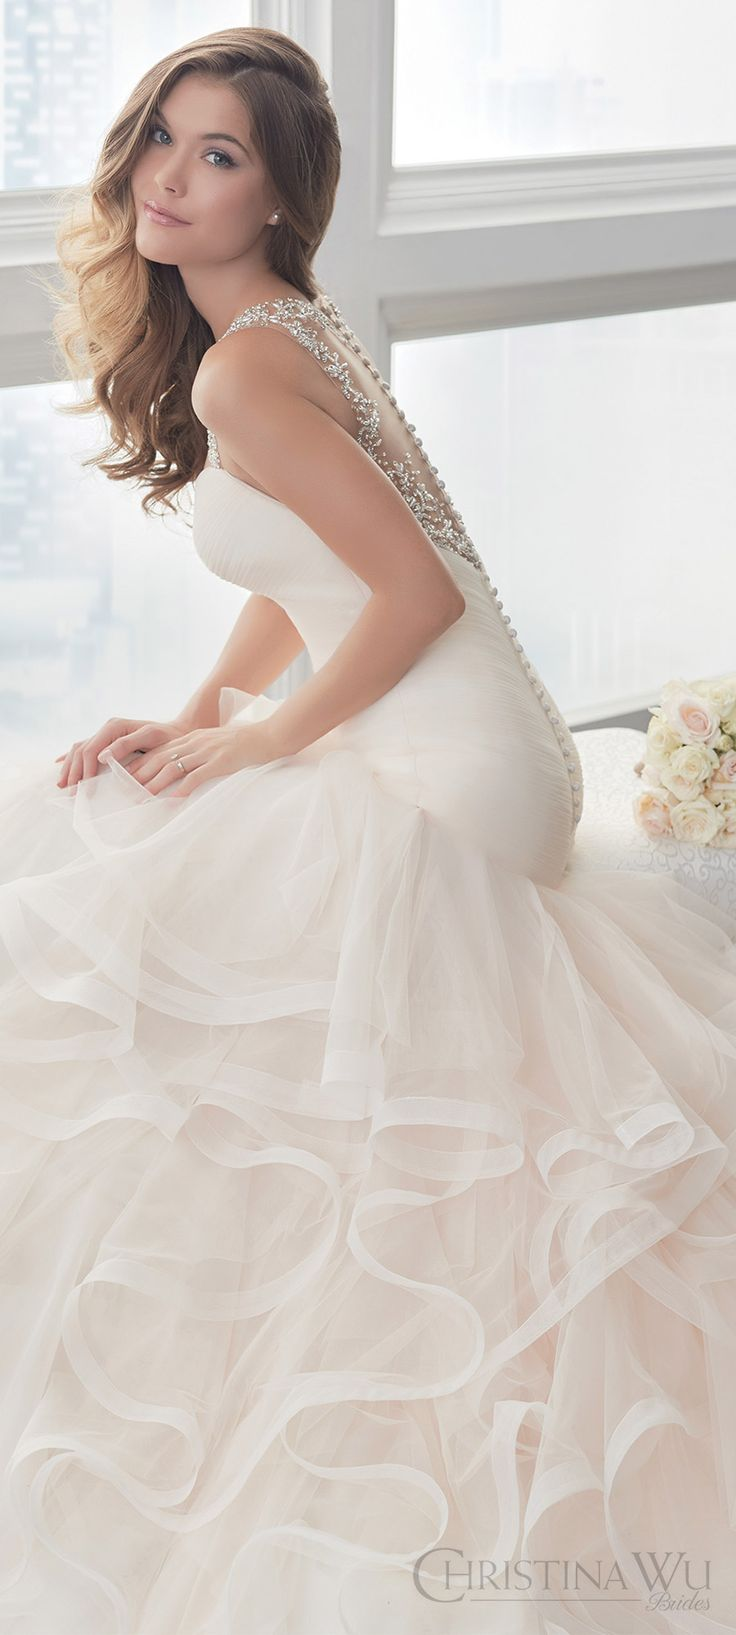 Popular Christina Wu Spring Bridal Trends That Will Make You Swoon